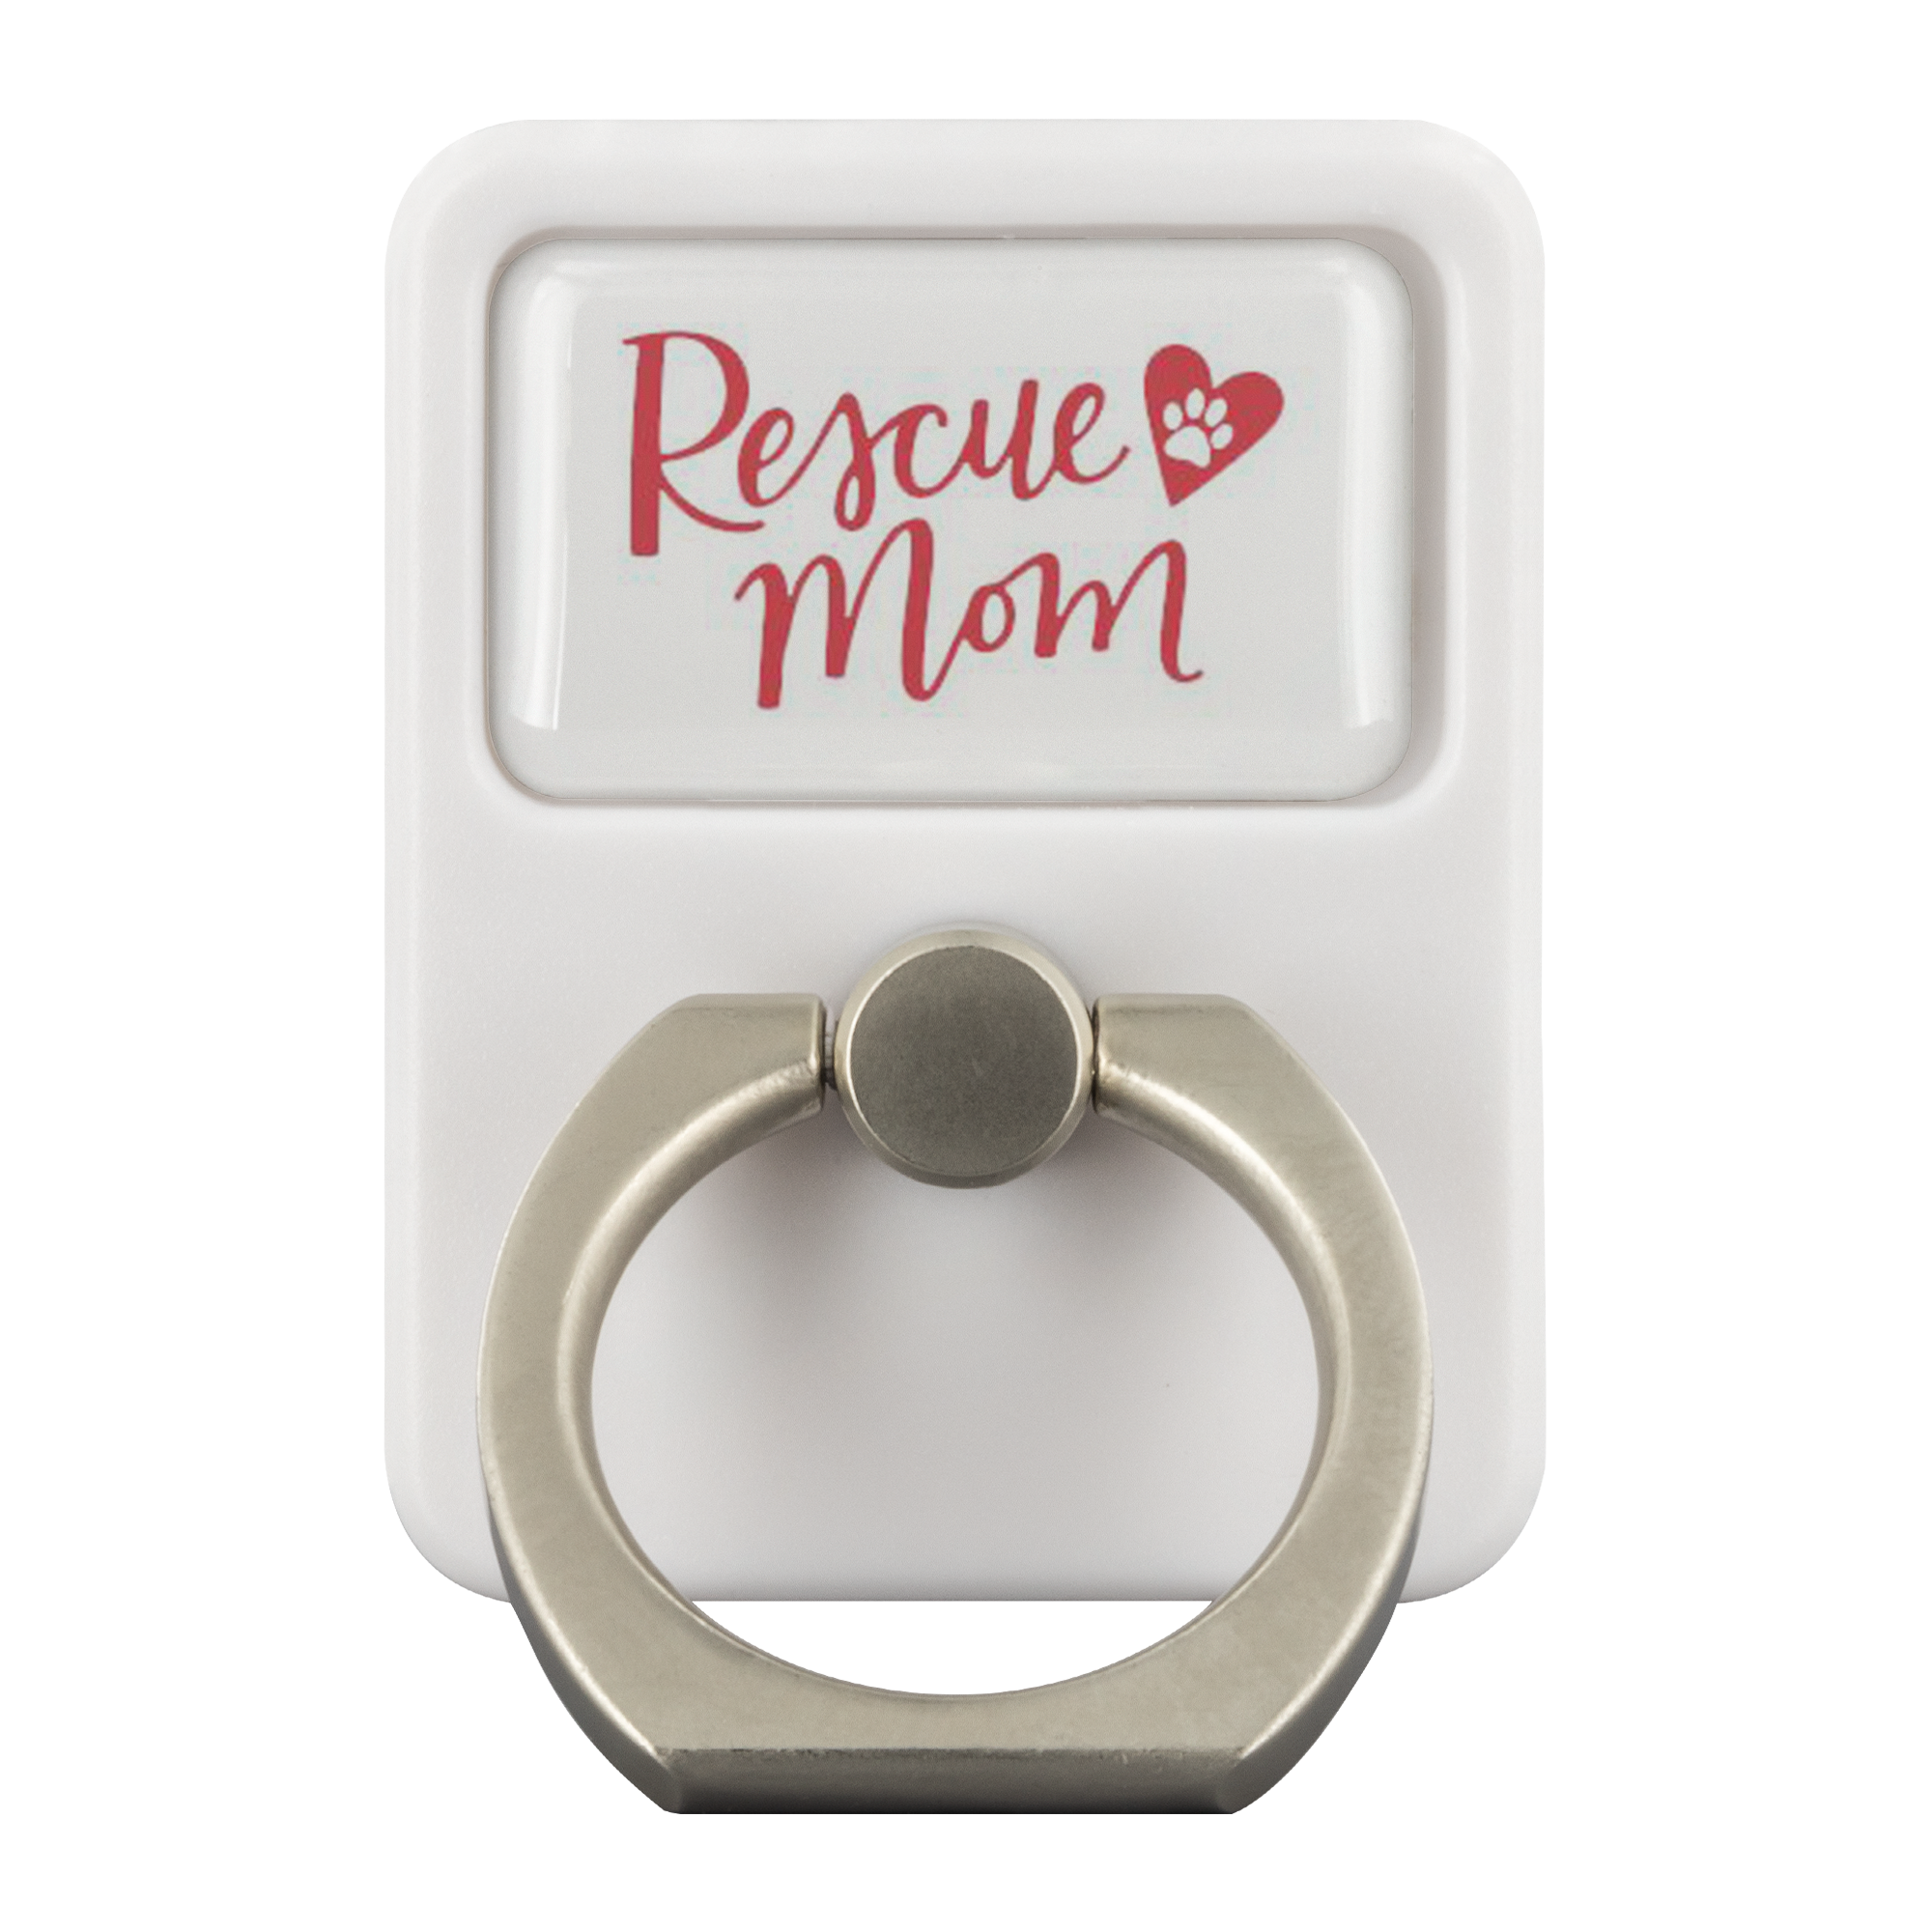 Cell Phone and Tablet Grip Stand Accessory - Rescue Mom Red